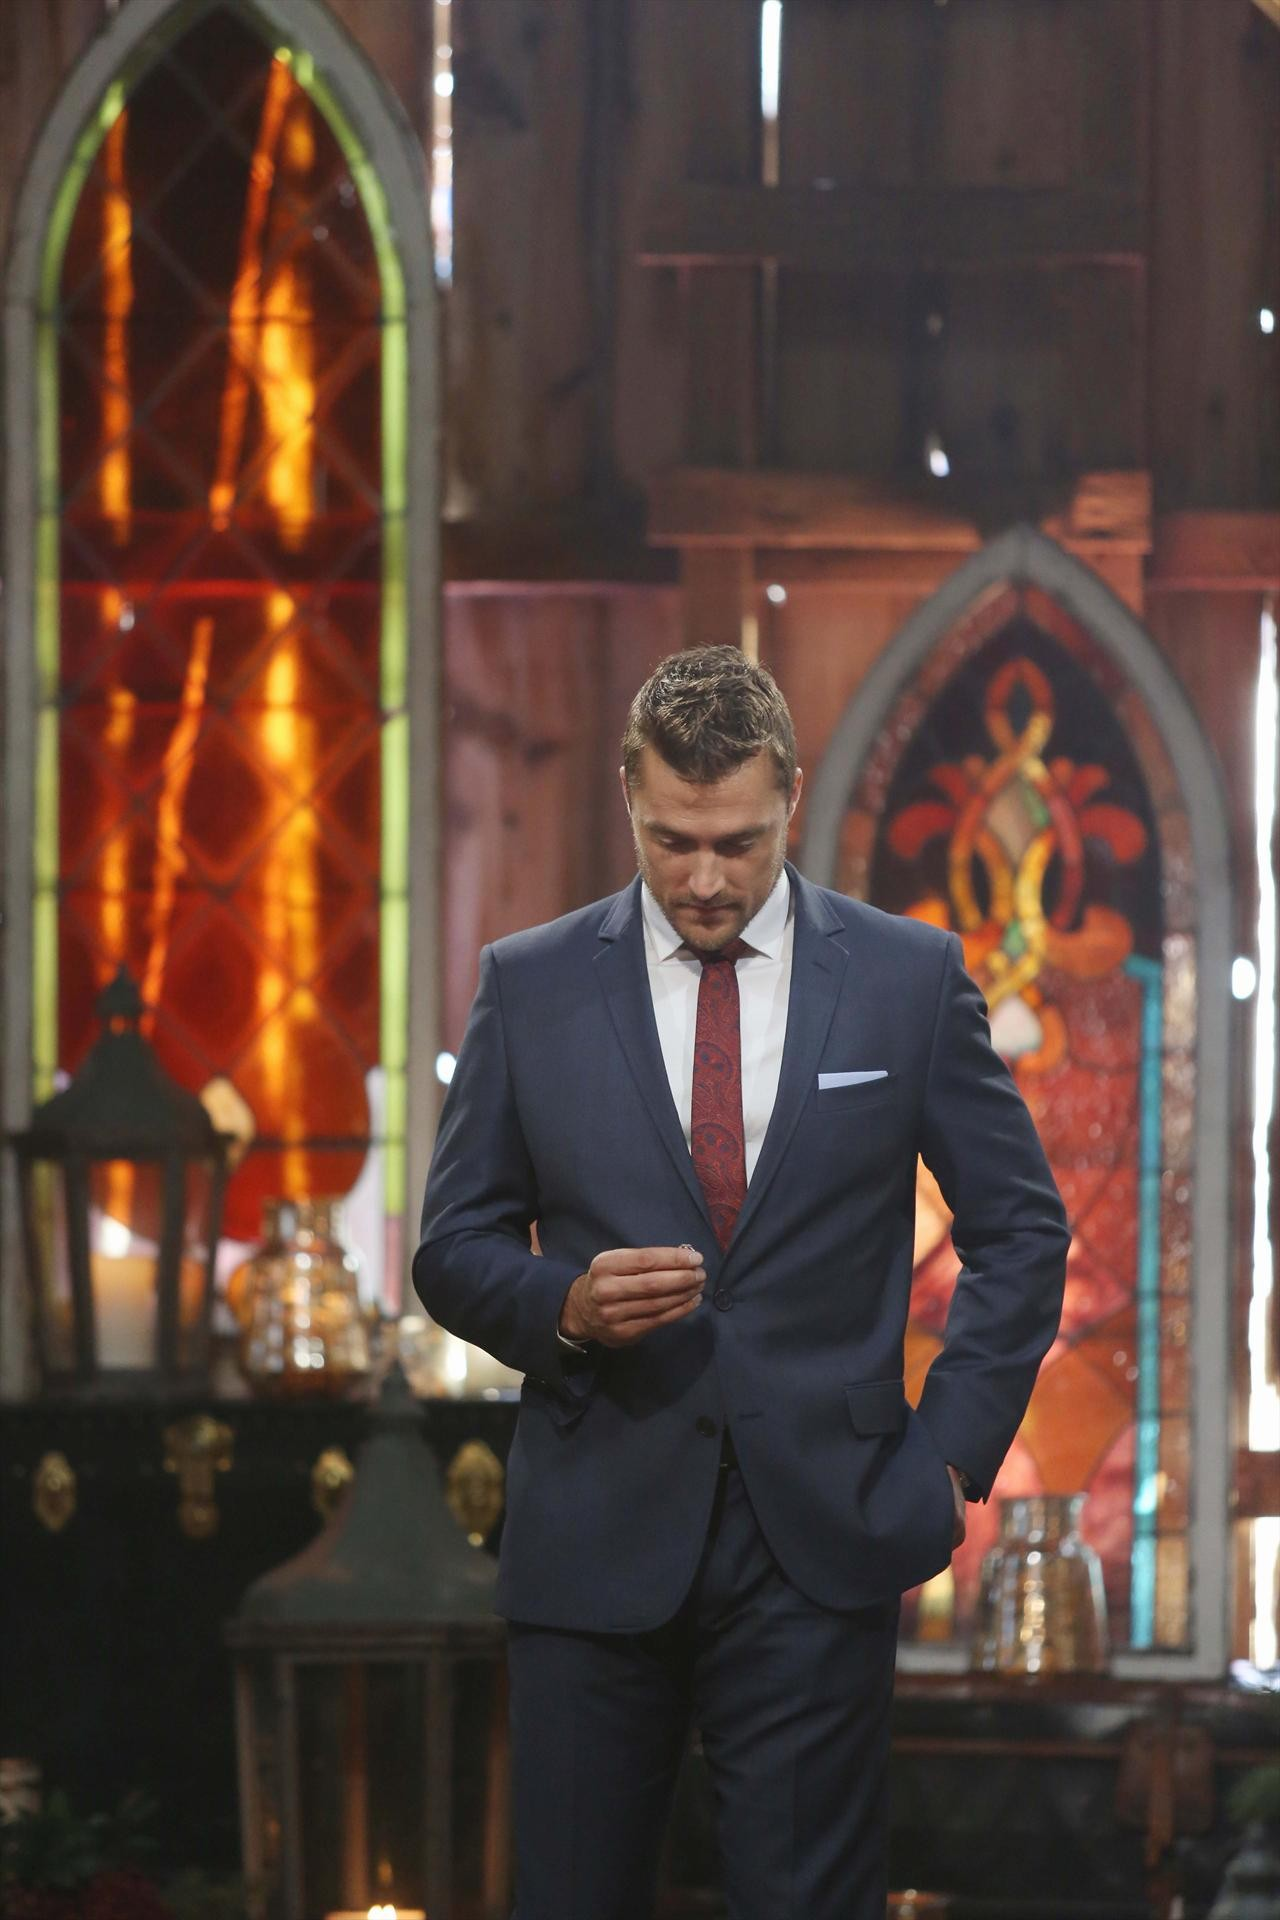 Who Won The Bachelorette 2015 Tonight Season 11 Finale | India Post